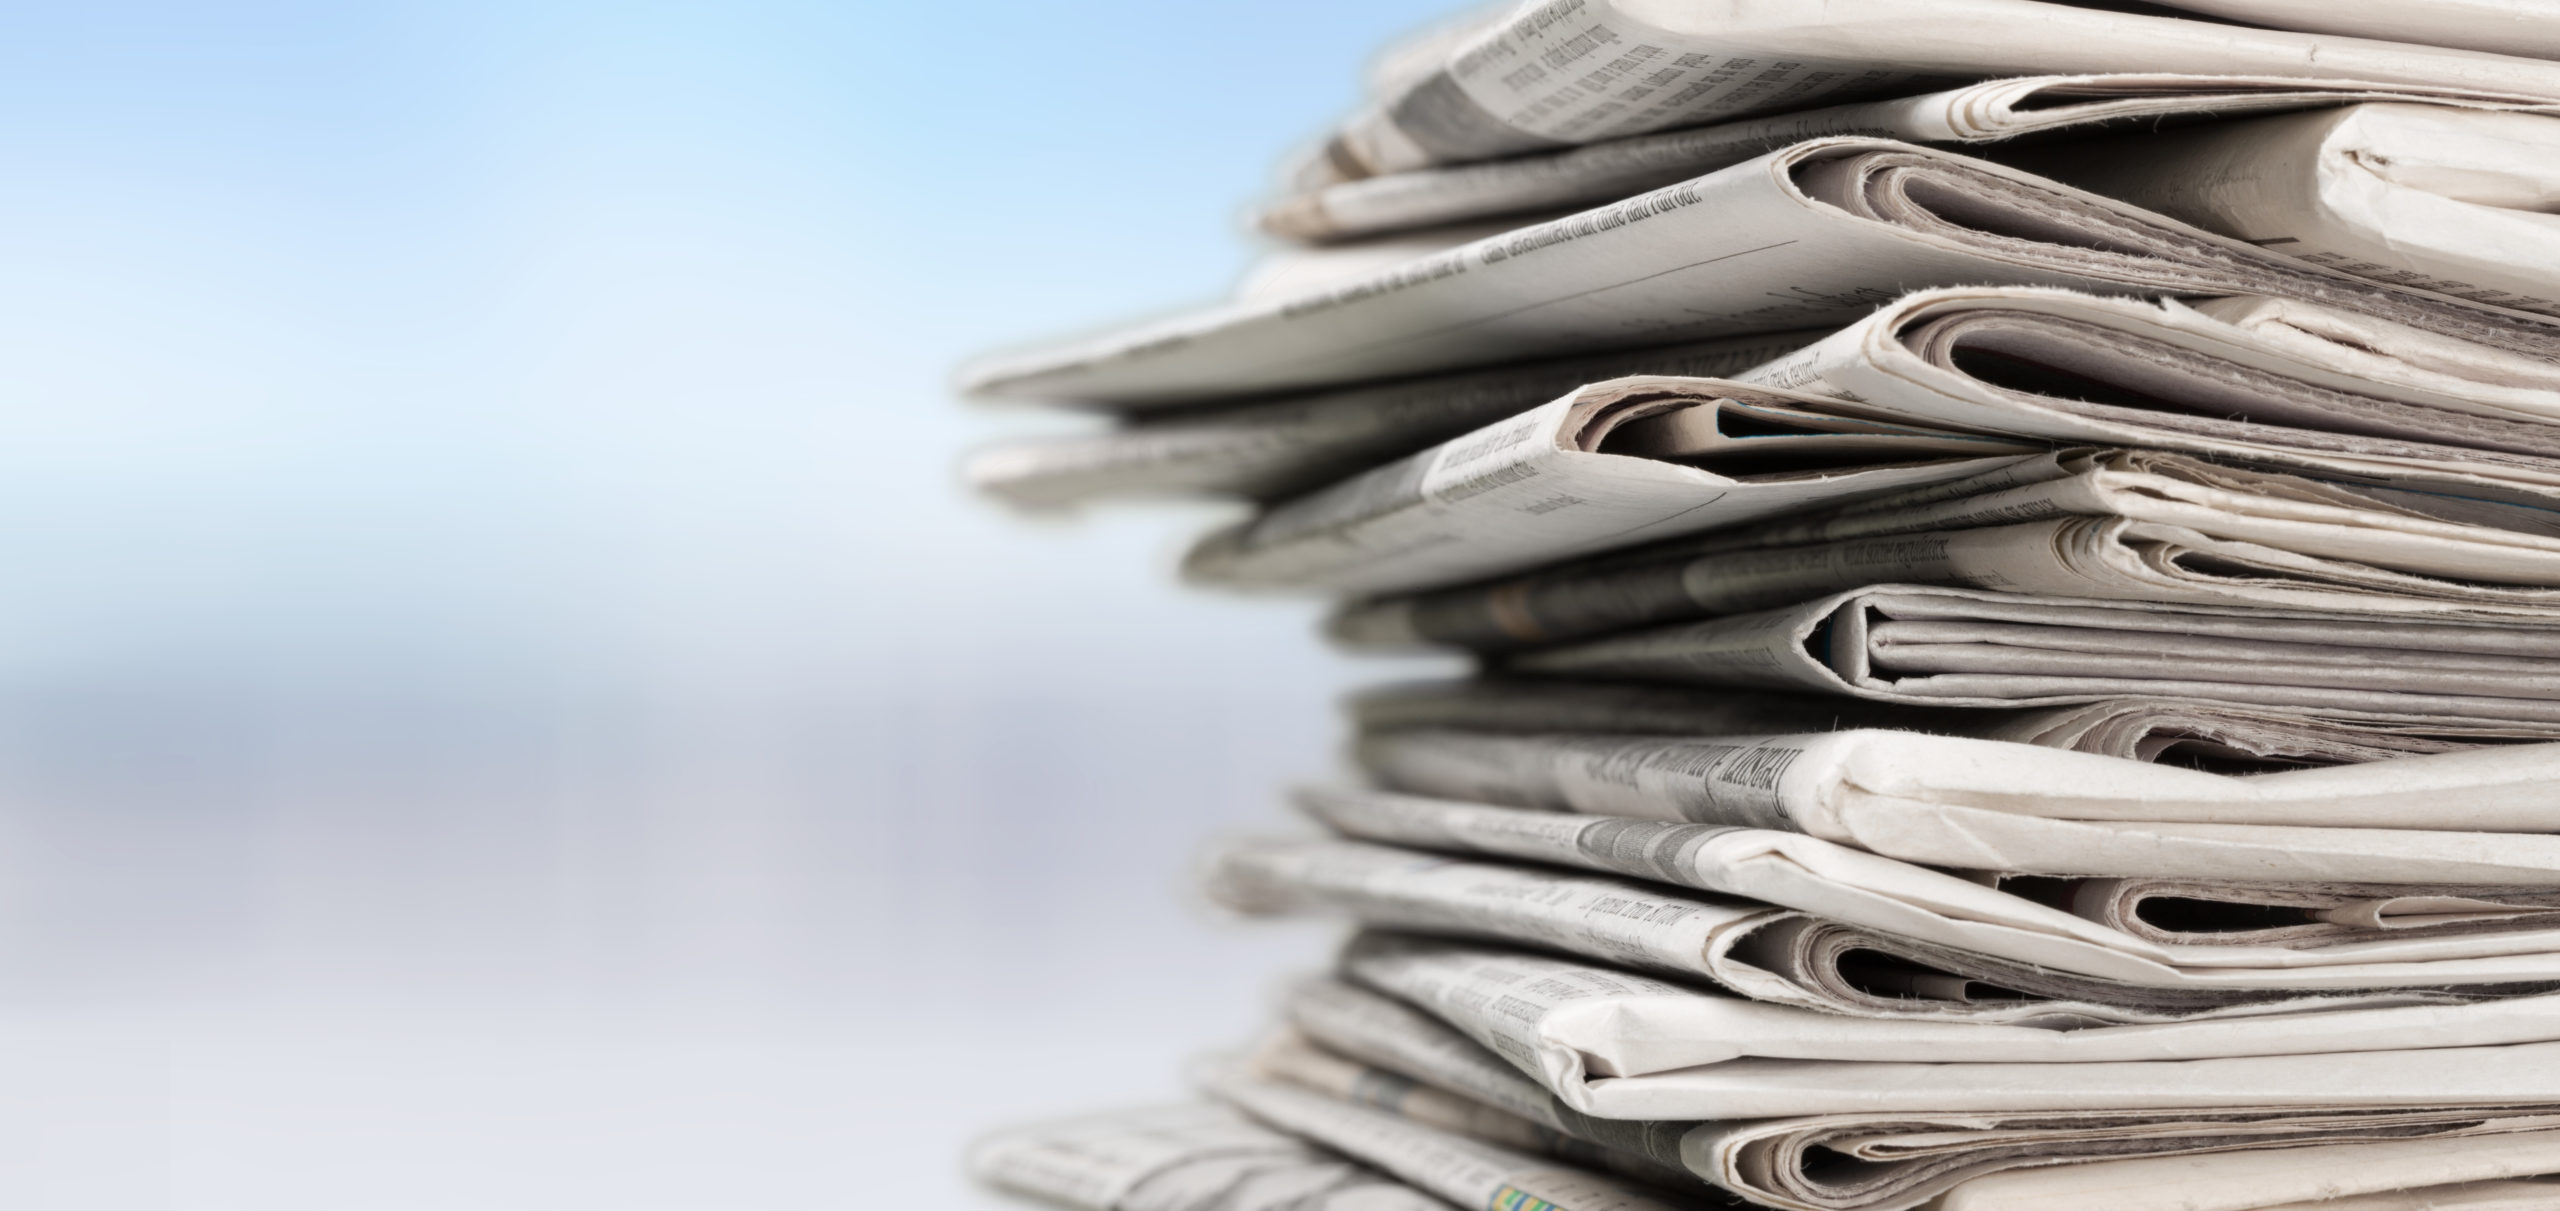 Journalists are still confused about why newspapers are losing money